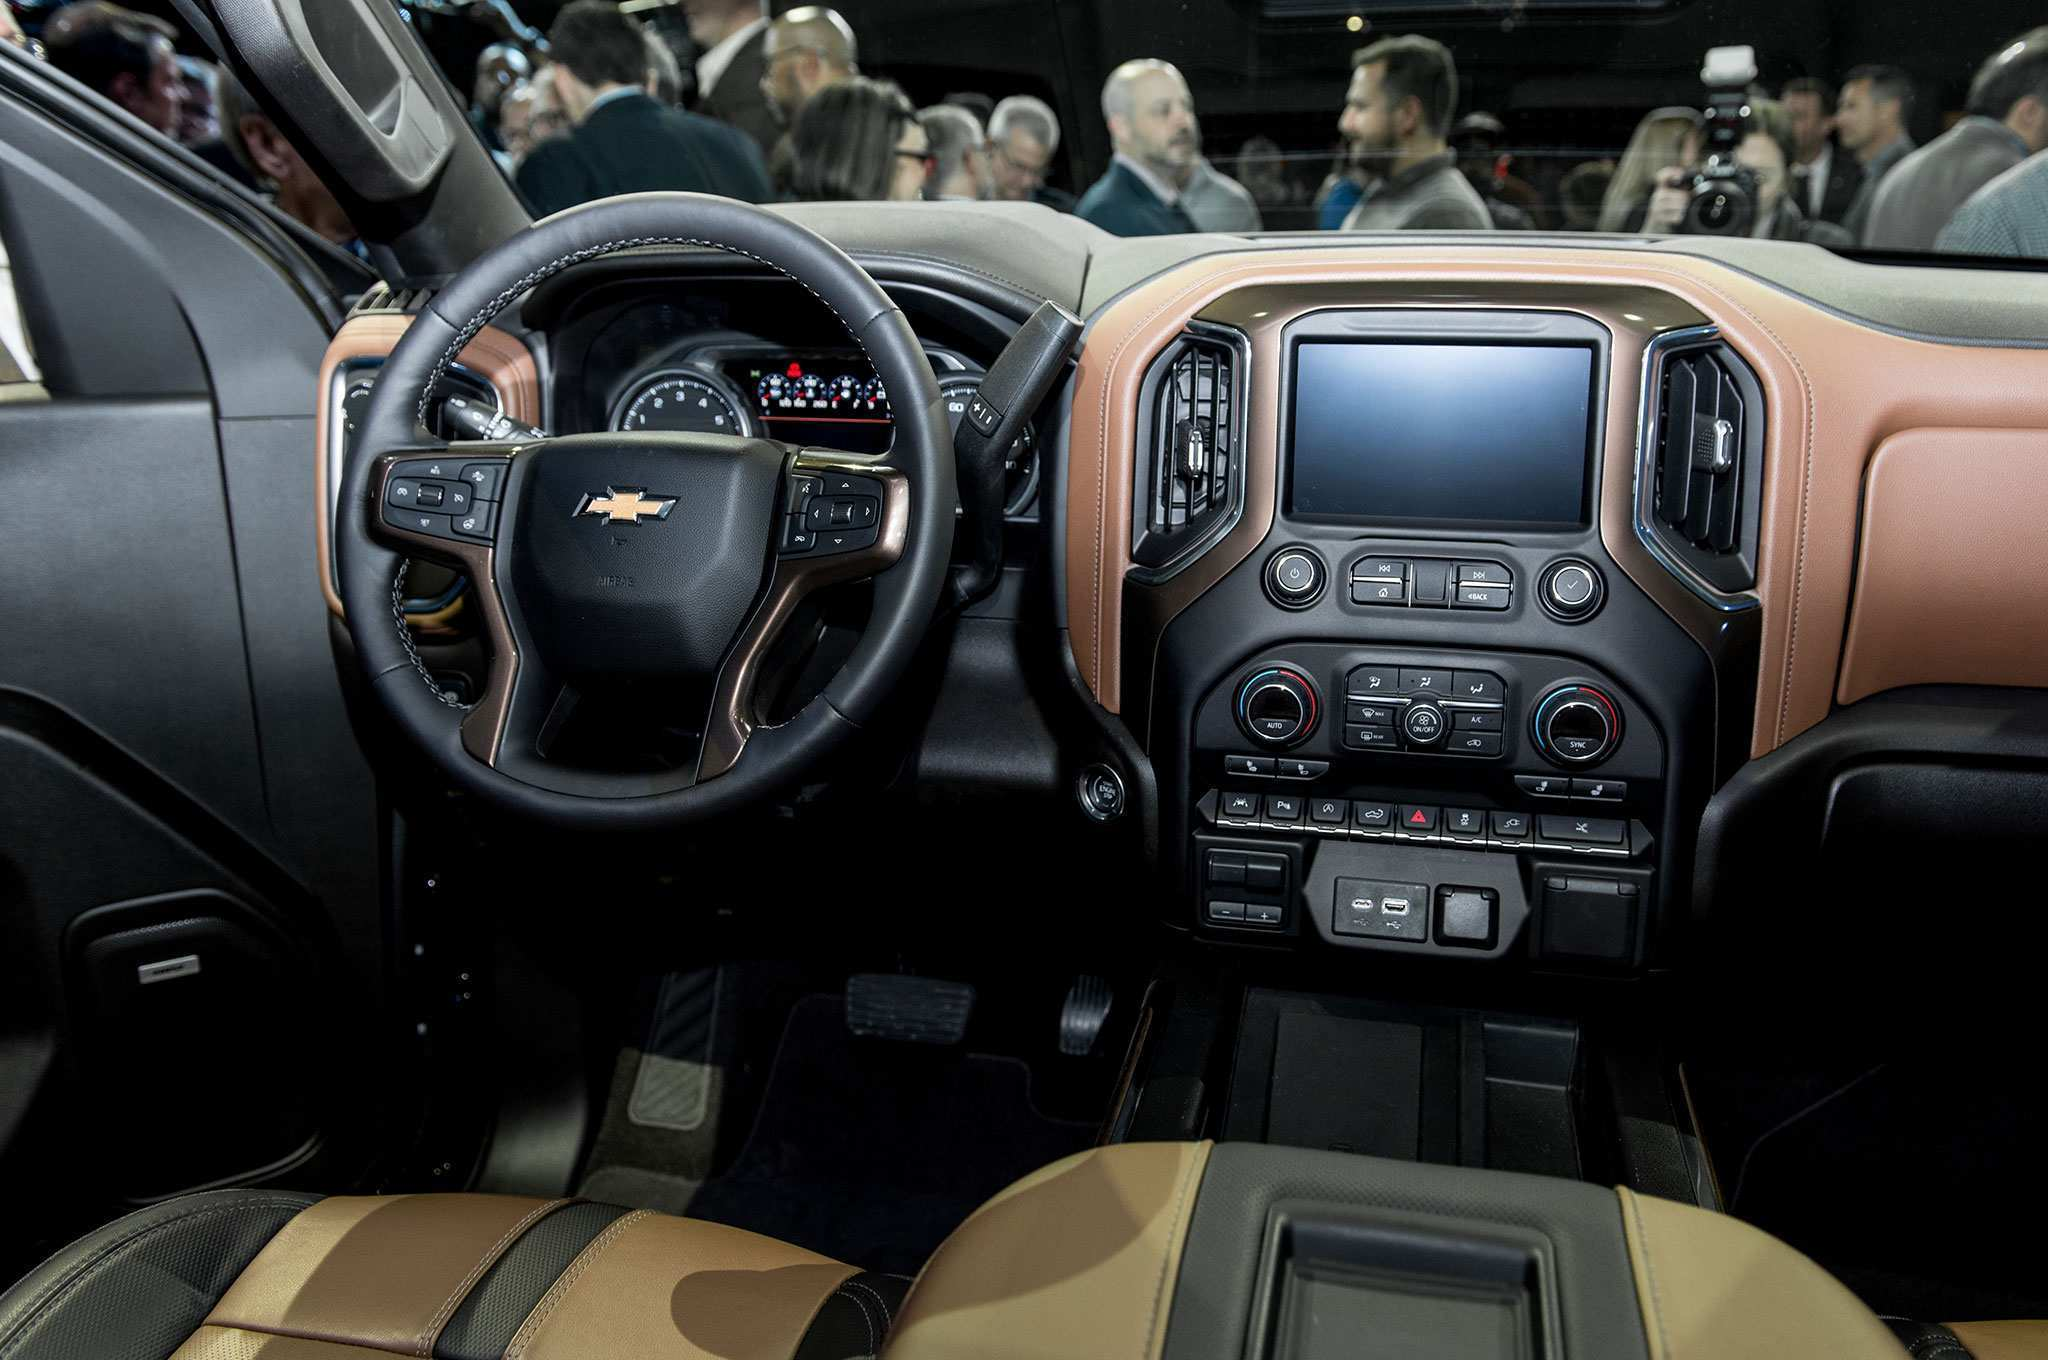 31 Concept of New Chevrolet 2019 Interior Rumors Model with New Chevrolet 2019 Interior Rumors